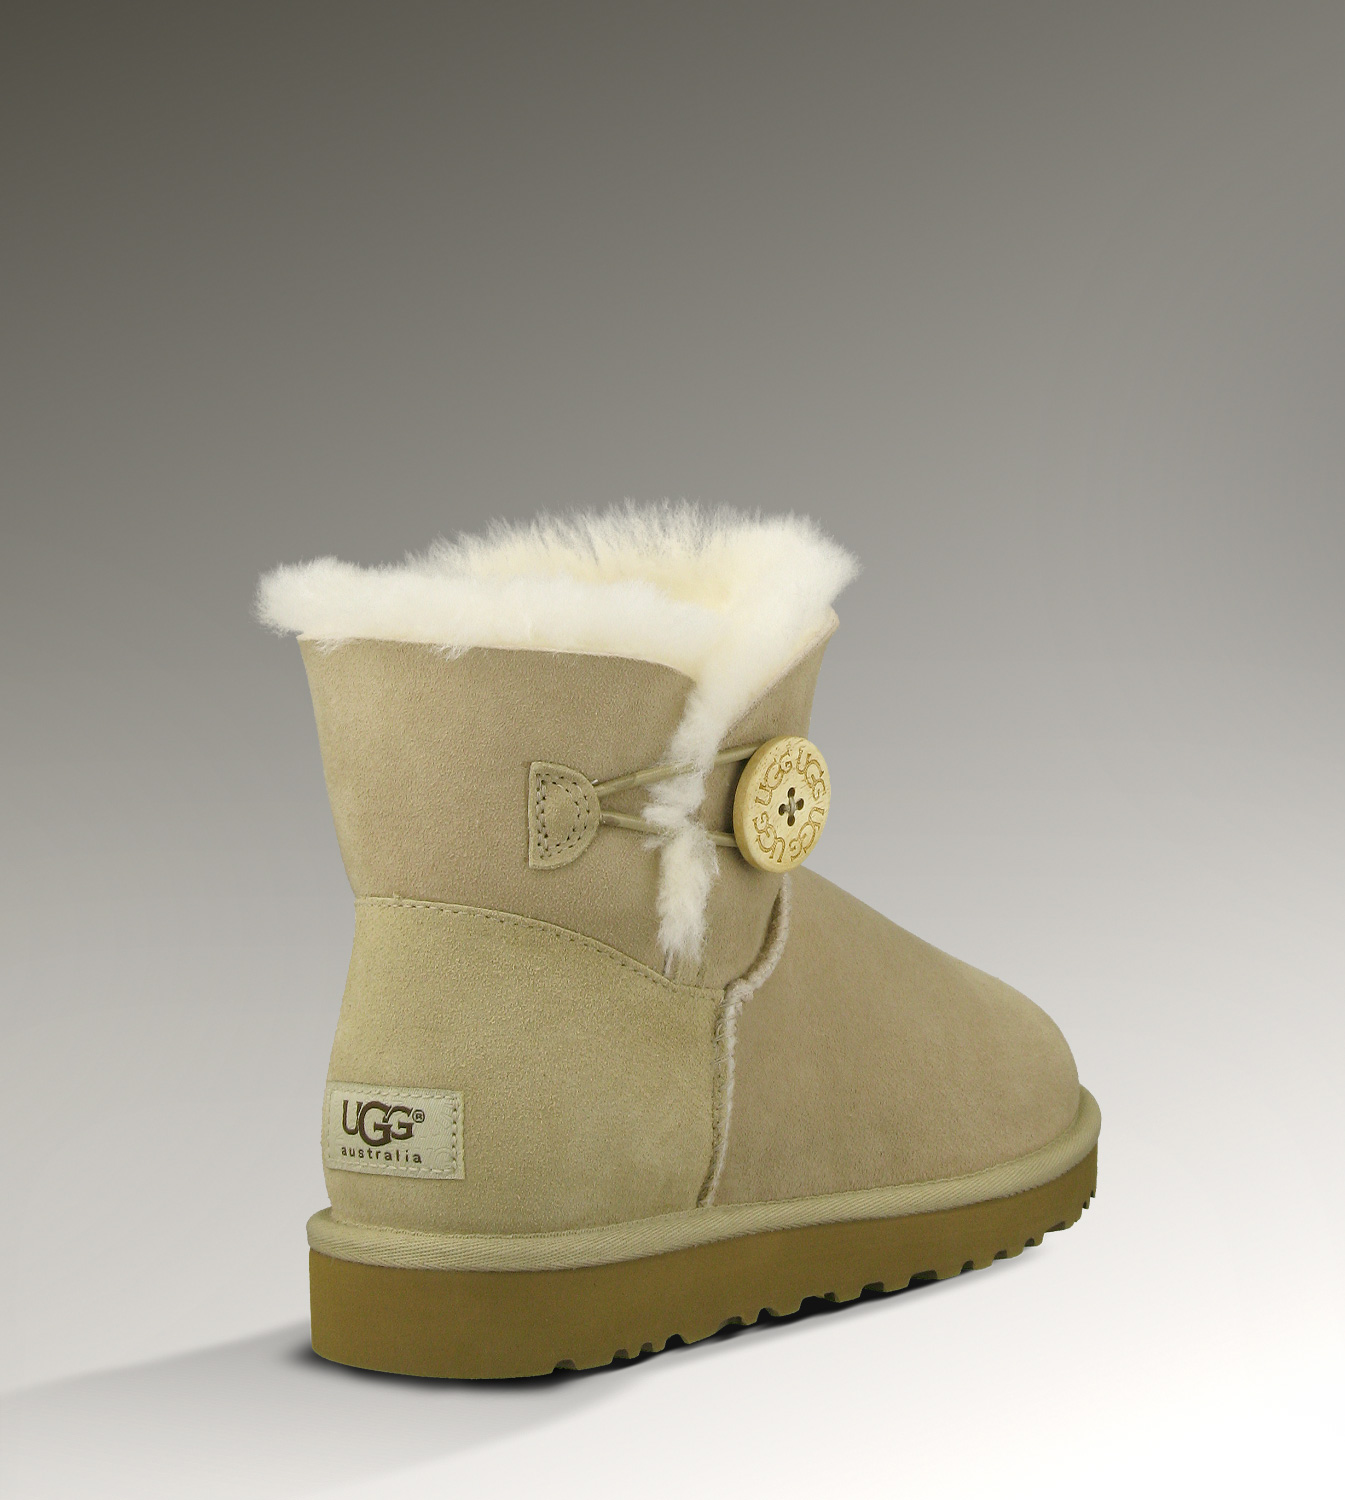 UGG Bailey Button Mini 3352 Sand Boots